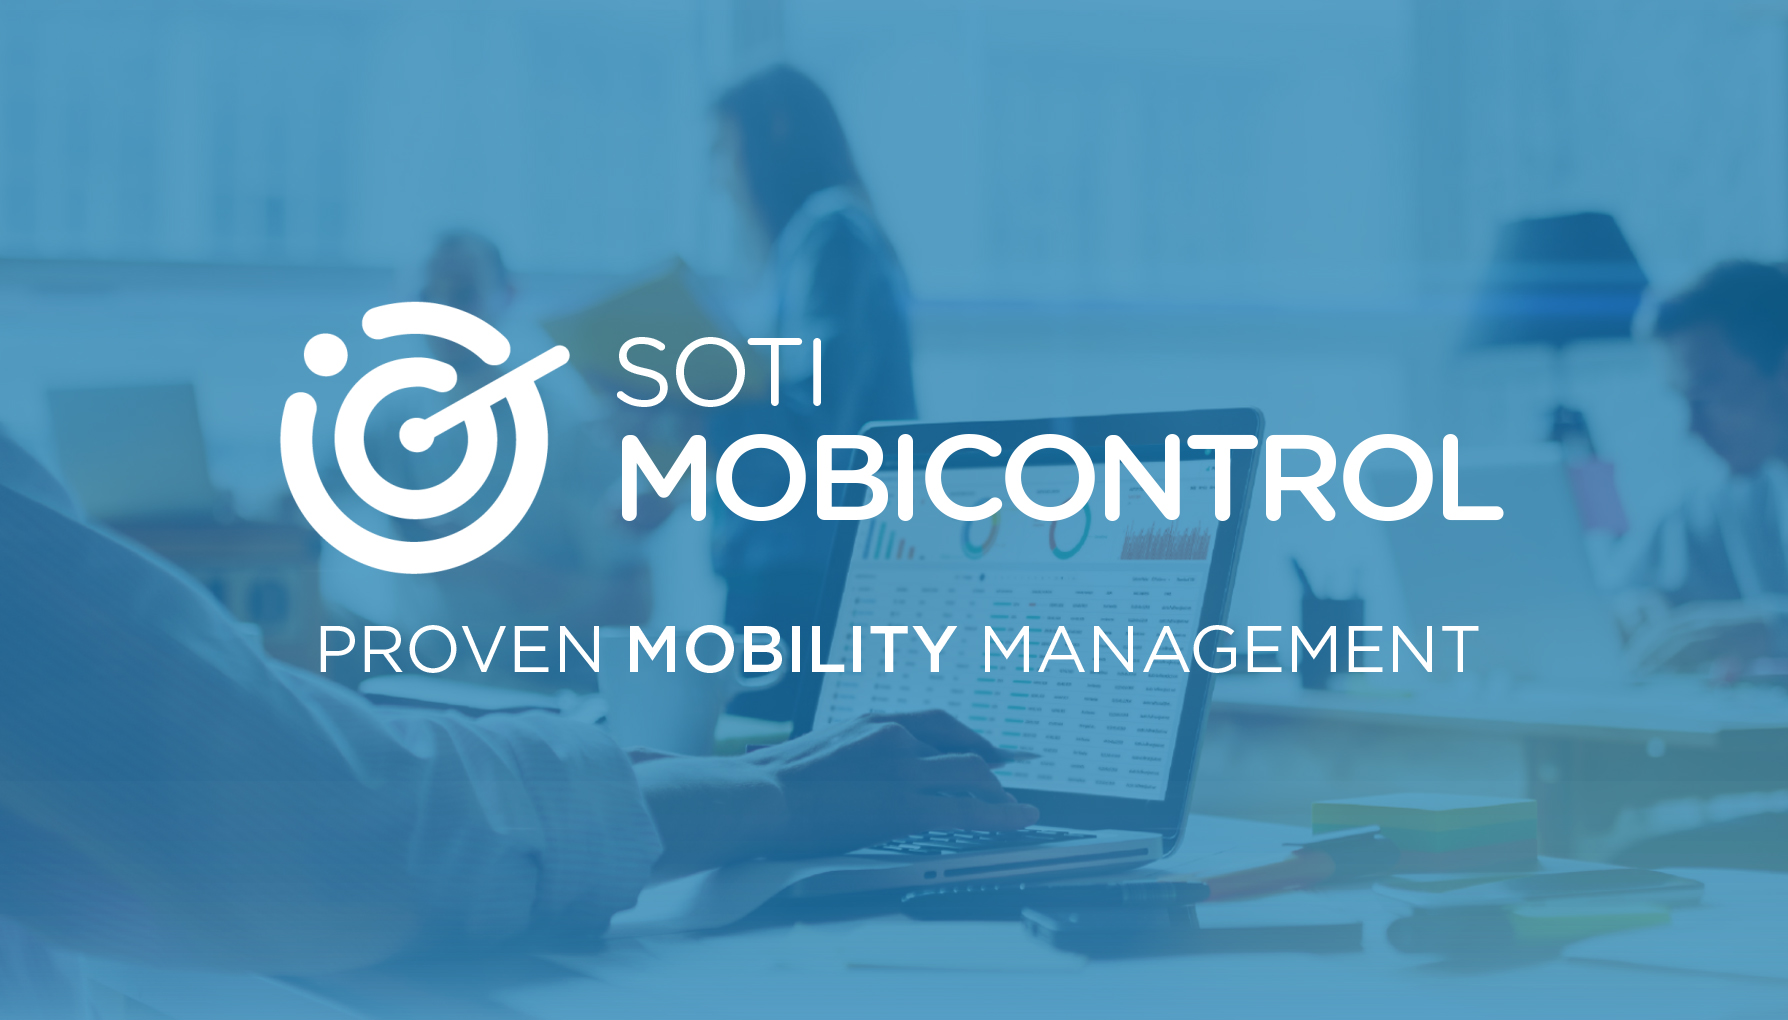 Soti MobiControl  MDM Software Overview